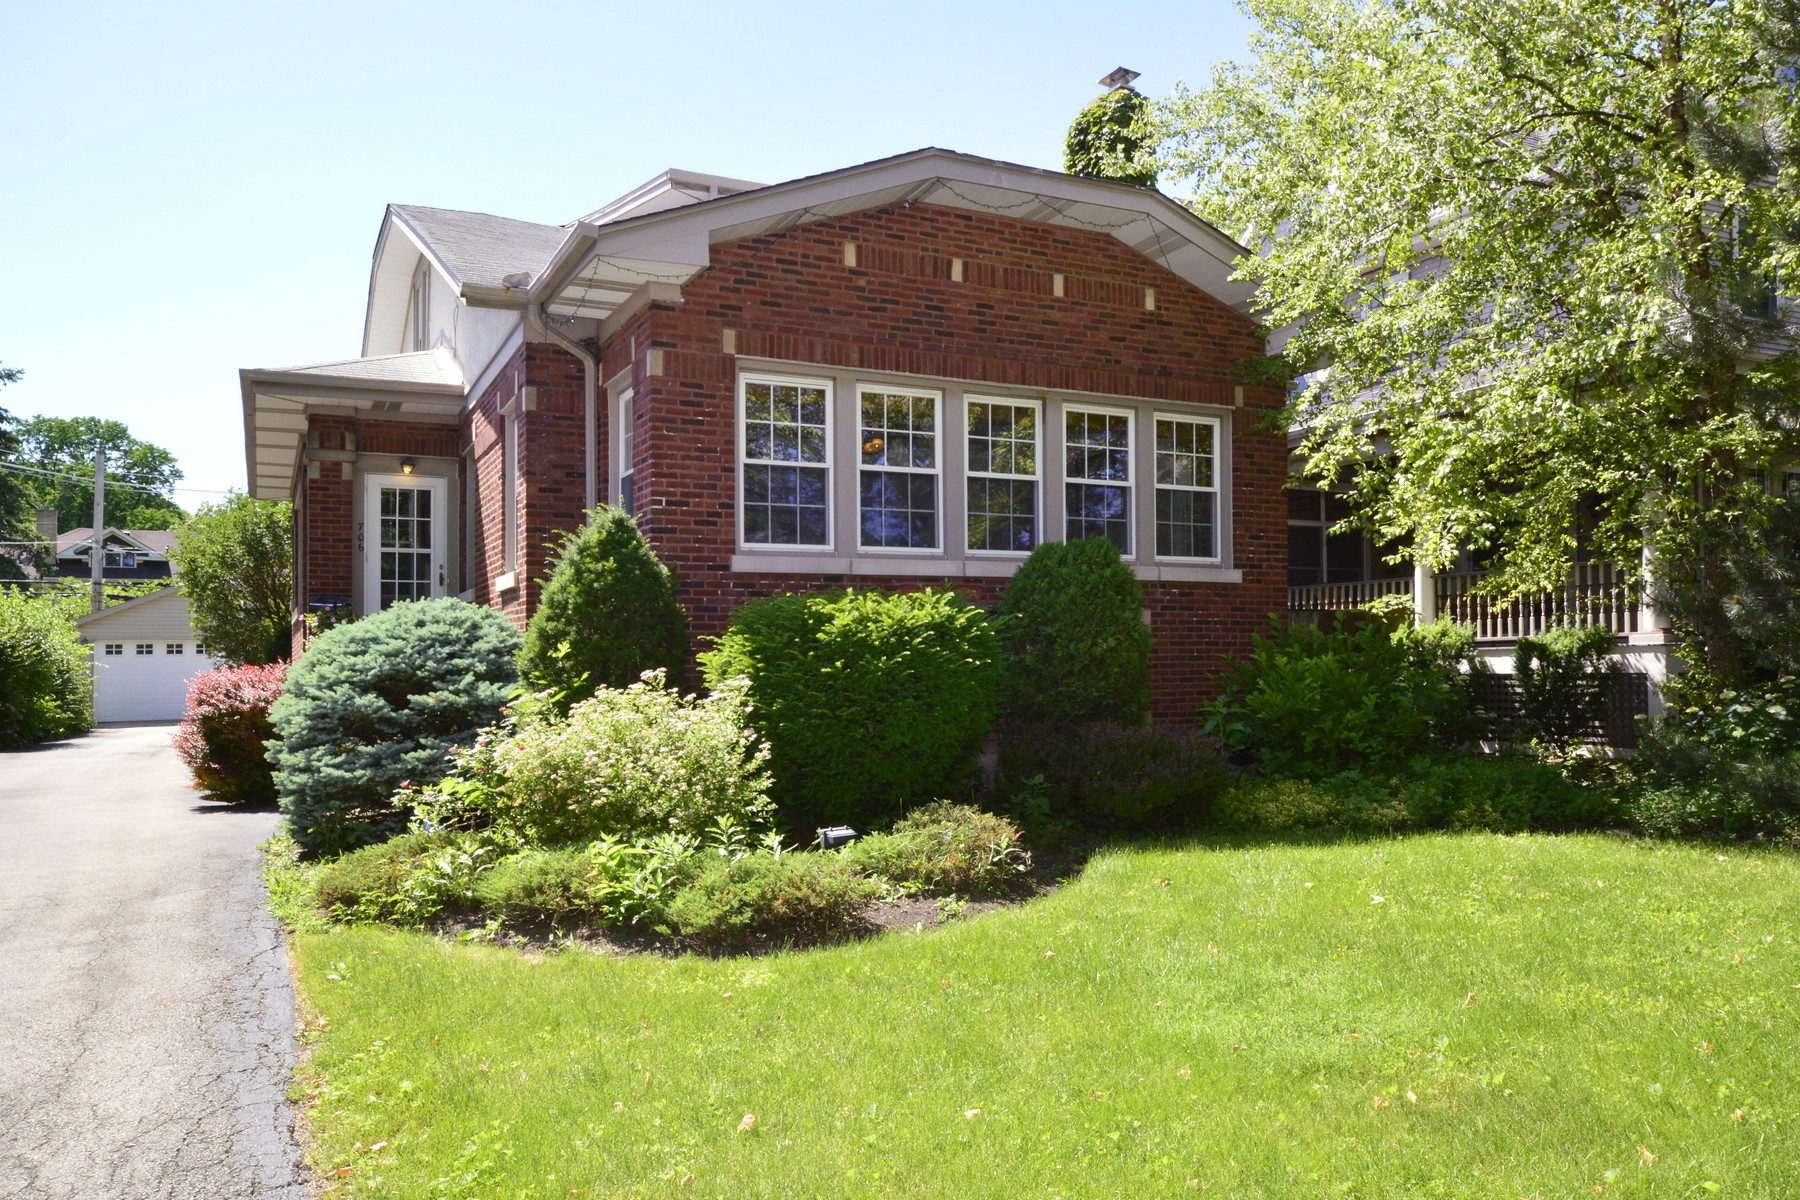 Single Family Home for Sale at Beautiful River Forest Home 706 Ashland Avenue River Forest, Illinois, 60305 United States